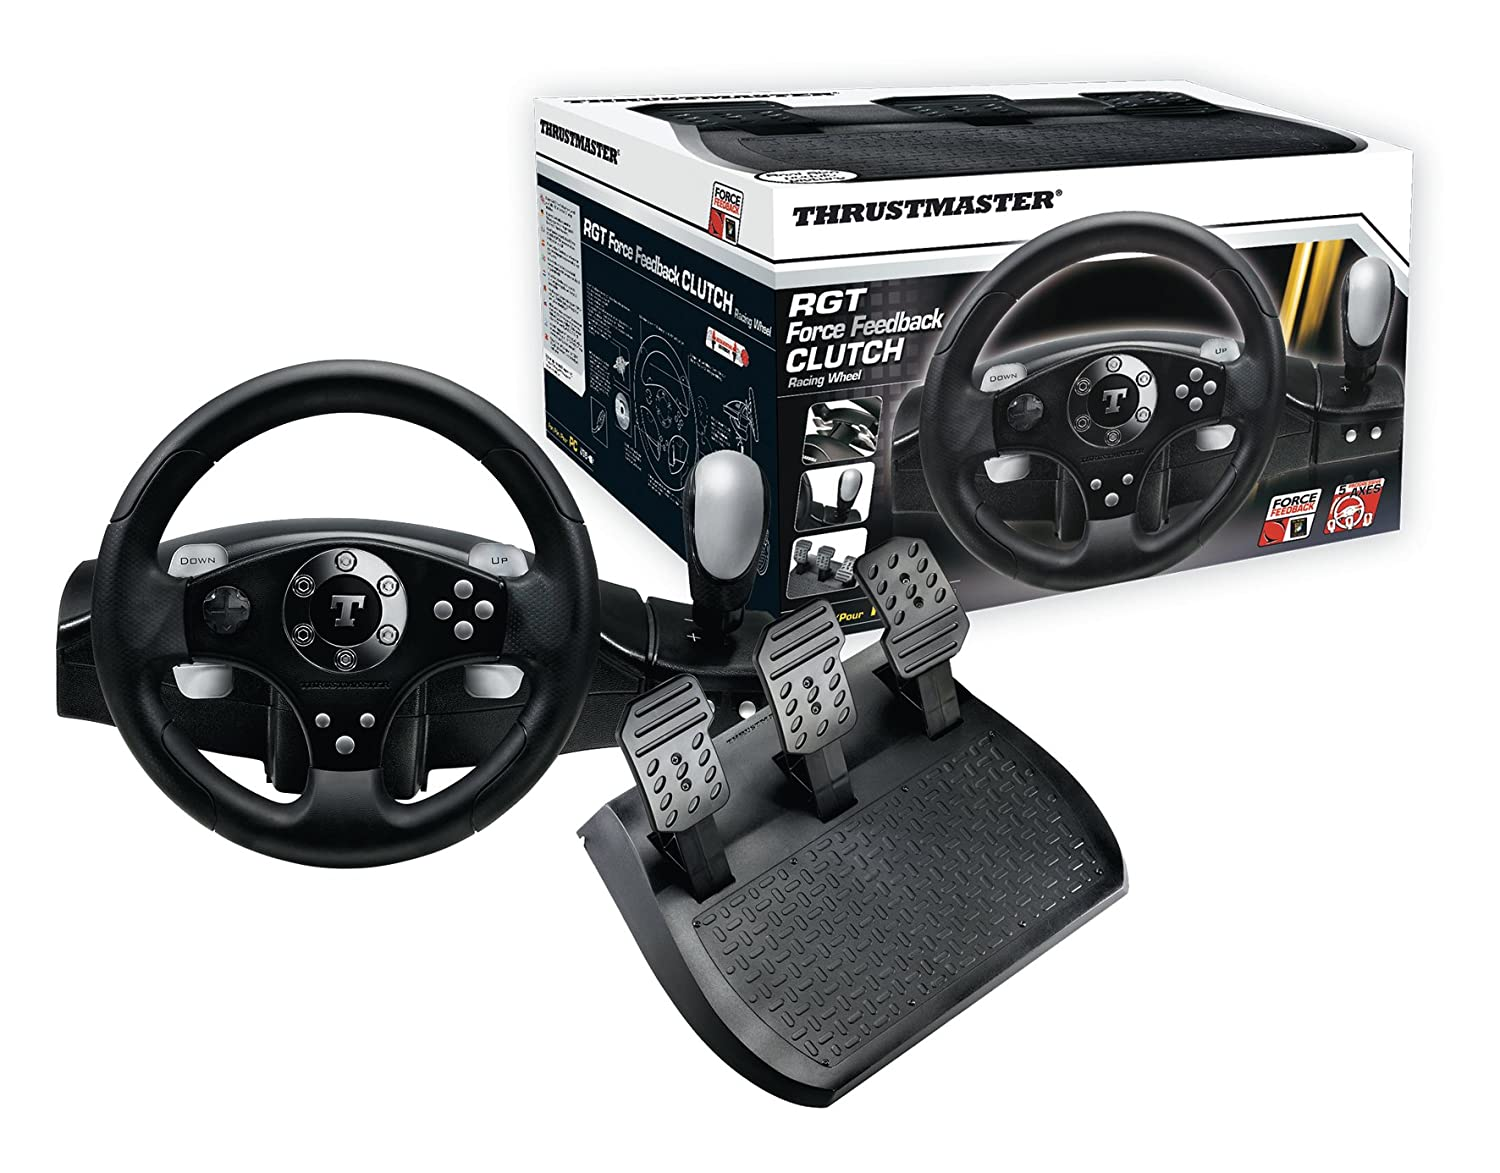 THRUSTMASTER RGT FFB CLUTCH WHEEL DRIVER WINDOWS